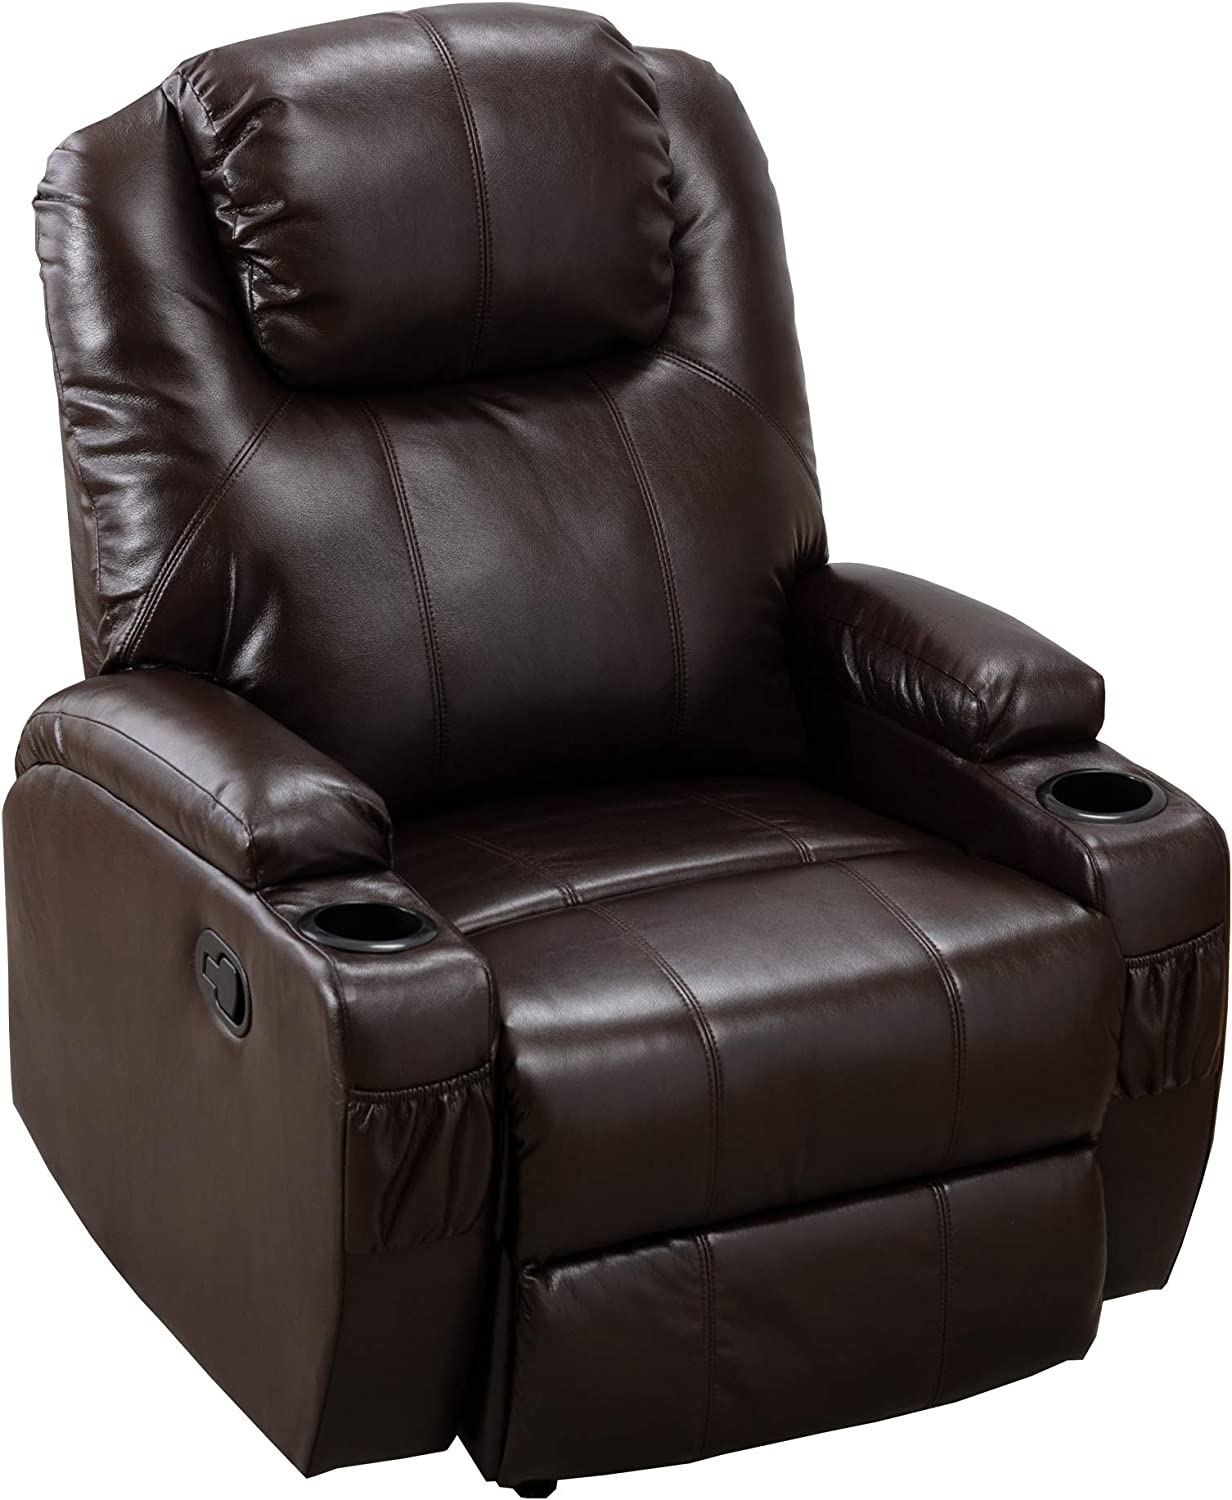 Merax Recliner Chair Lazy Boy Sofa, Manual Ergonomic Design with 2 Cup Holders for Living Room, Chocolate